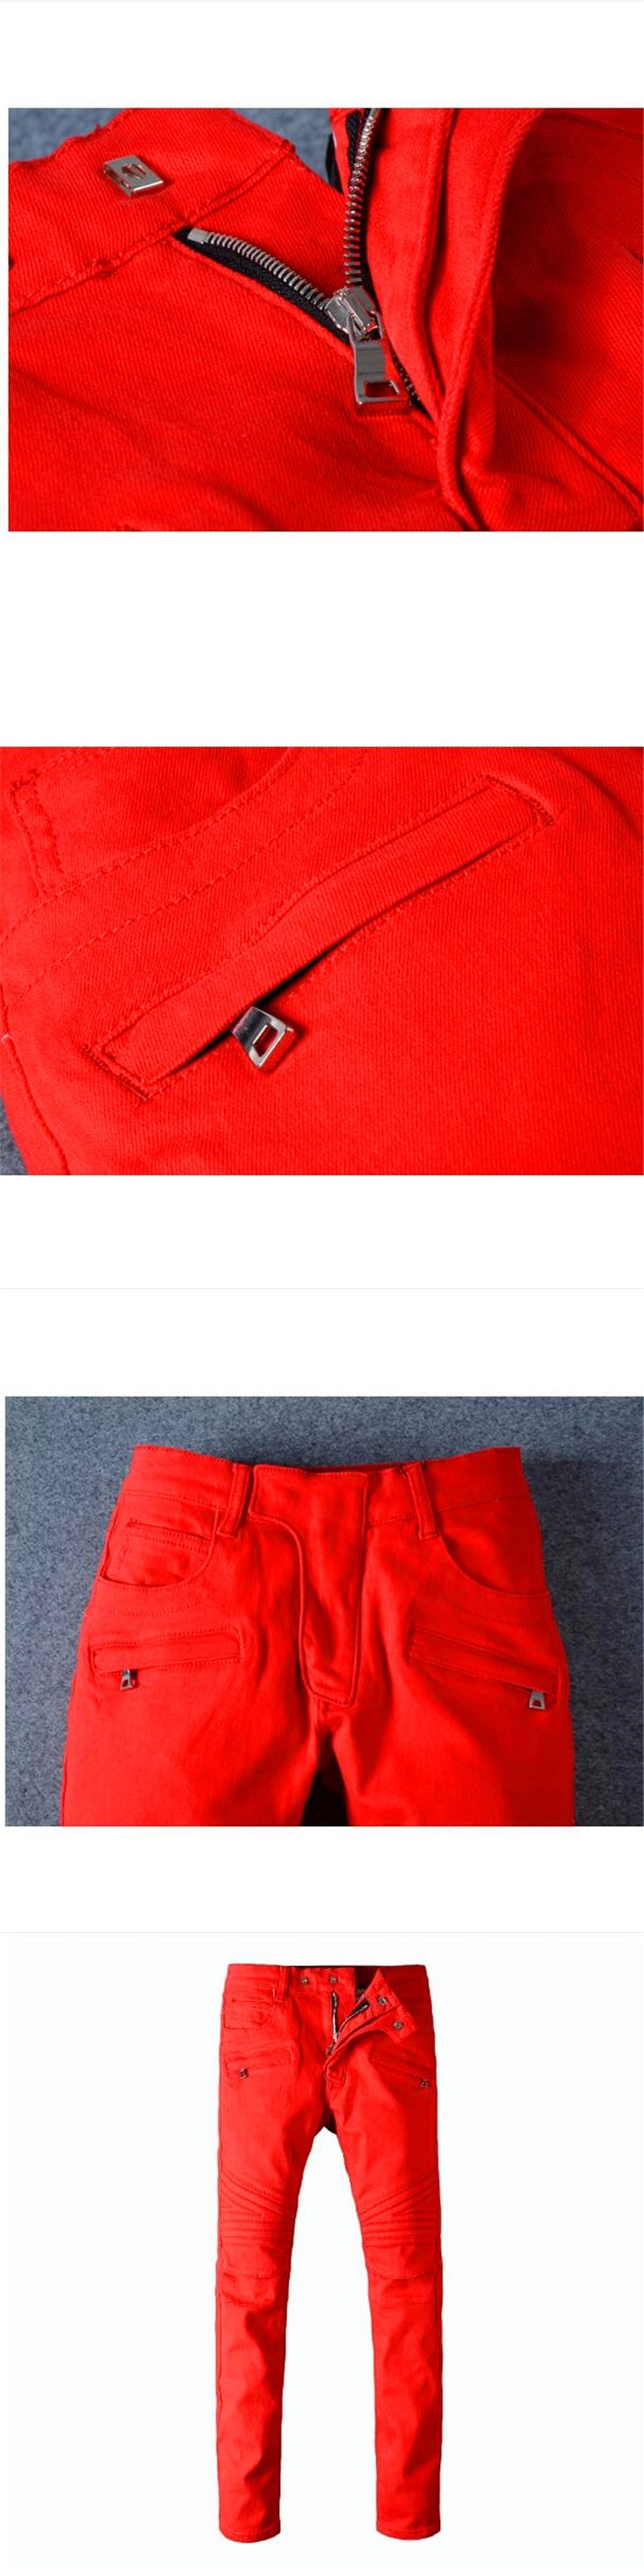 Free Delivery,2017 Red Ripped Jeans Men With Holes Super Skinny Famous Slim Fit Torn Jean Pants For Male